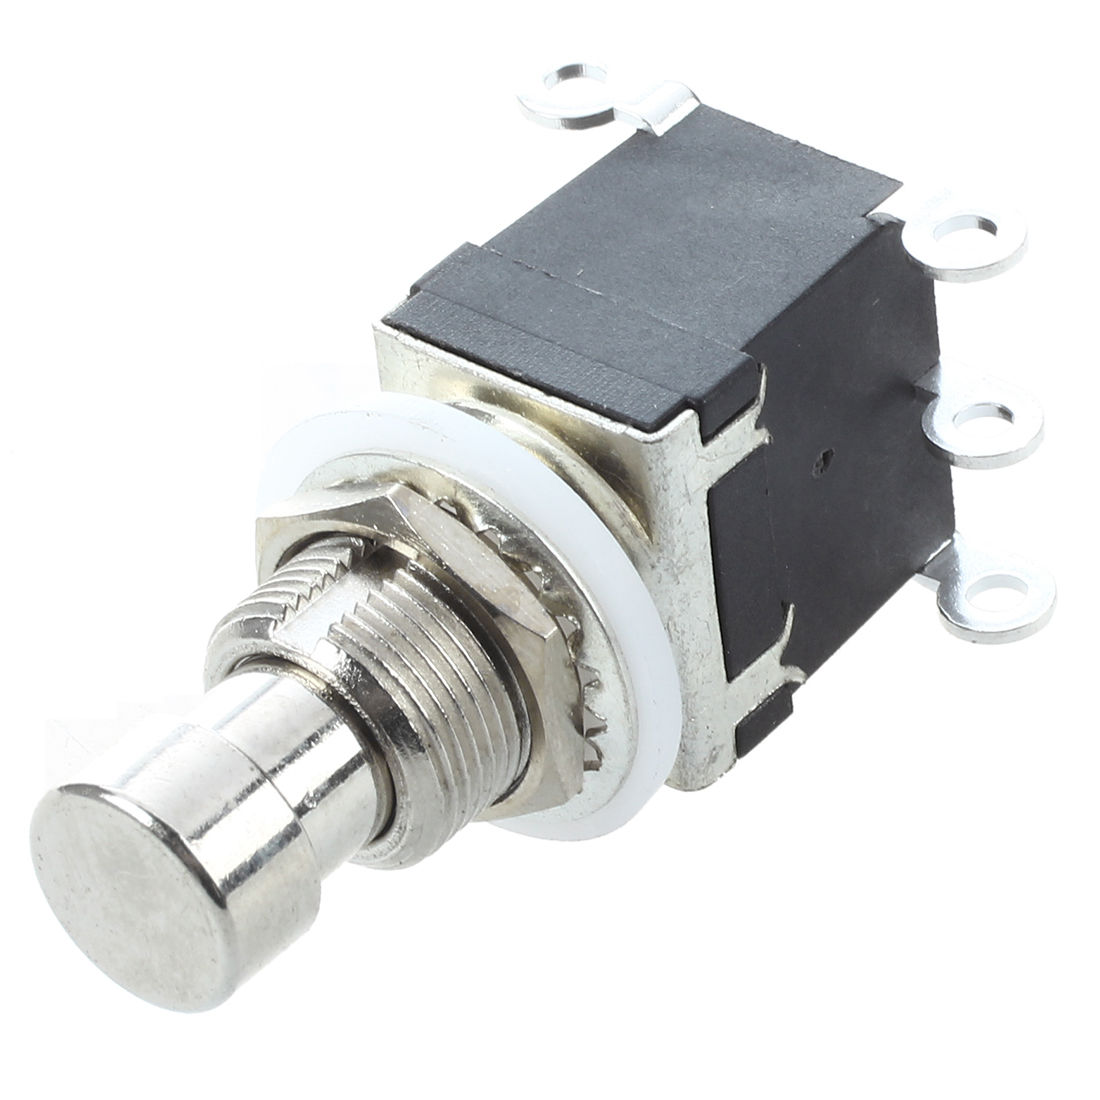 hight resolution of aliexpress com buy 6pins dpdt momentary stomp foot switch for guitar ac 250v 2a 125v 4a from reliable switch for guitar suppliers on decorative lifestyle